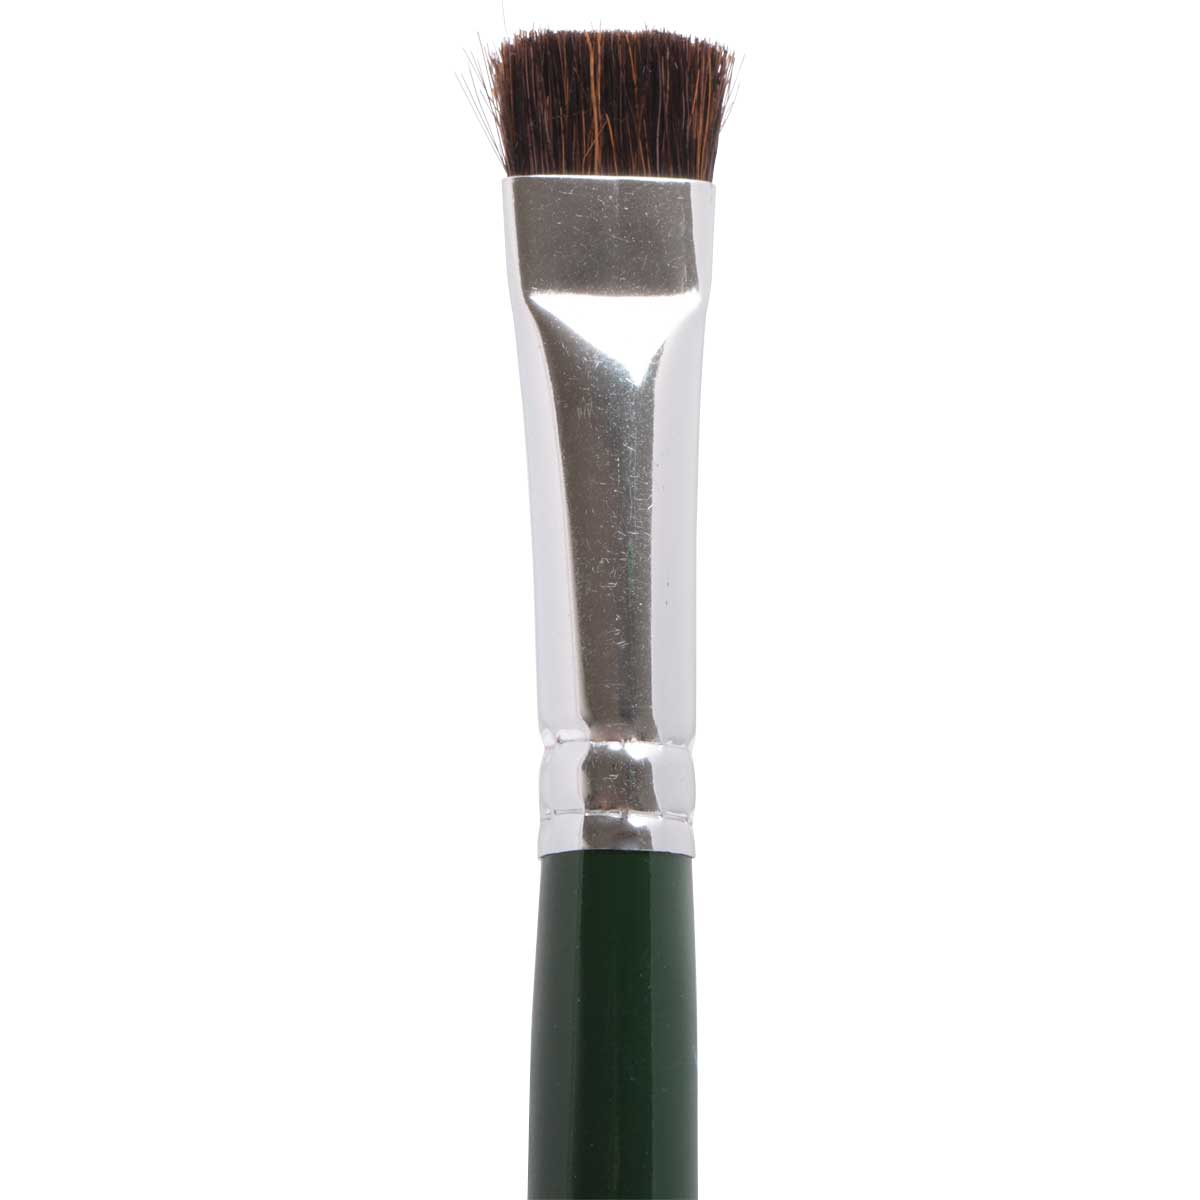 FolkArt ® One Stroke™ Brushes - Scruffy, 1/2